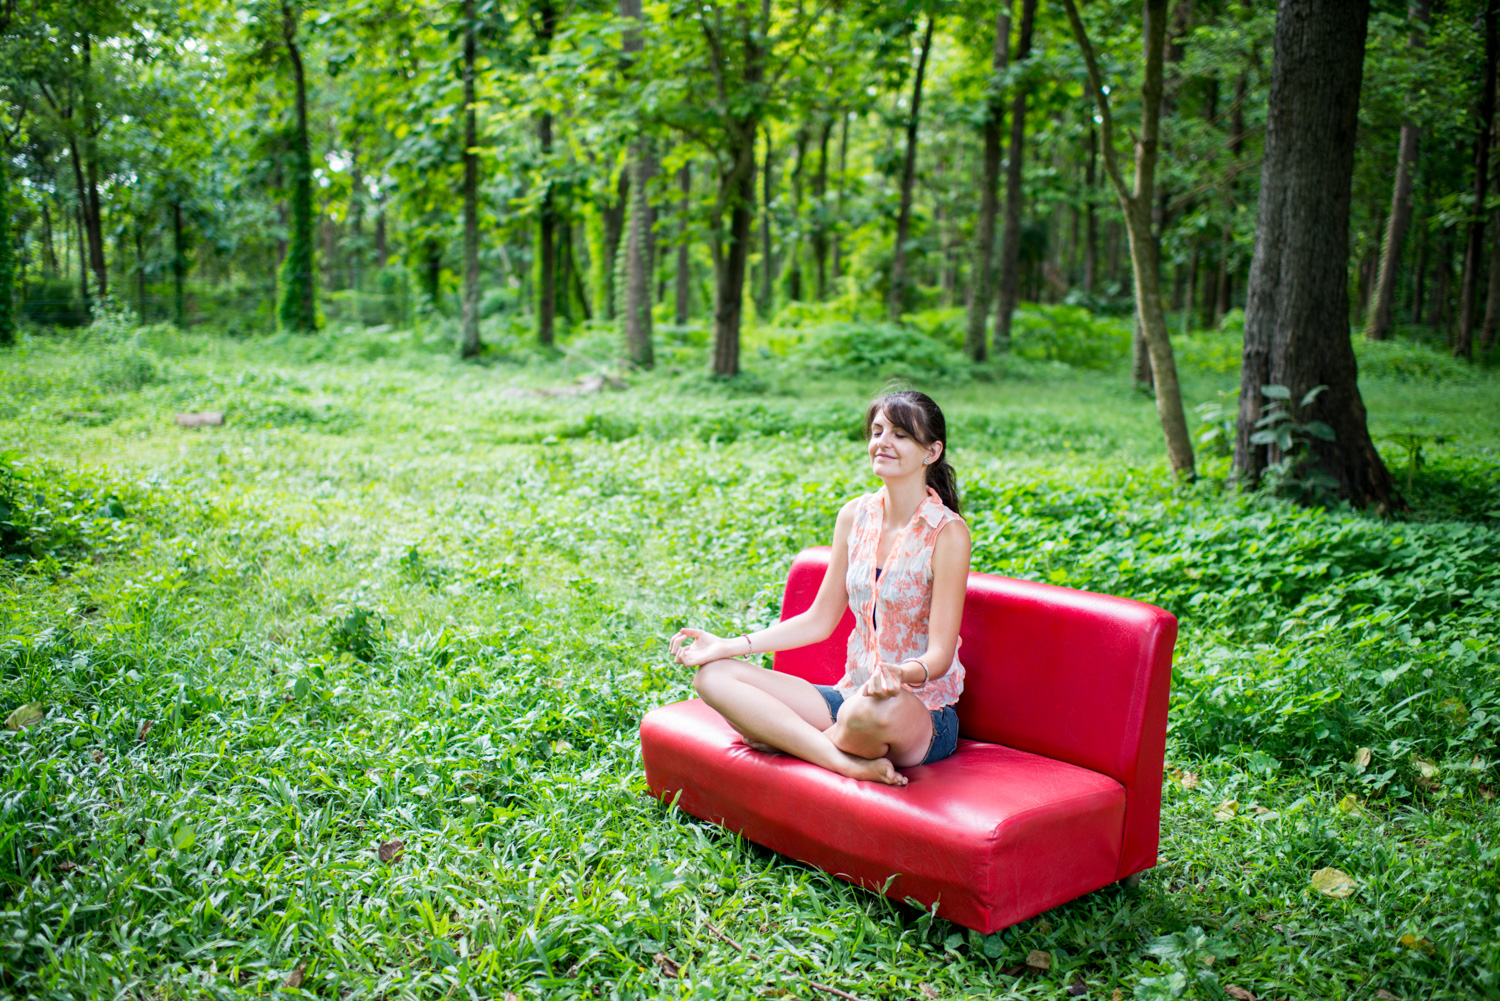 https://i2.wp.com/digital-photography-school.com/wp-content/uploads/2020/02/Red-Sofa-Meditation.jpg?resize=1500%2C1001&ssl=1